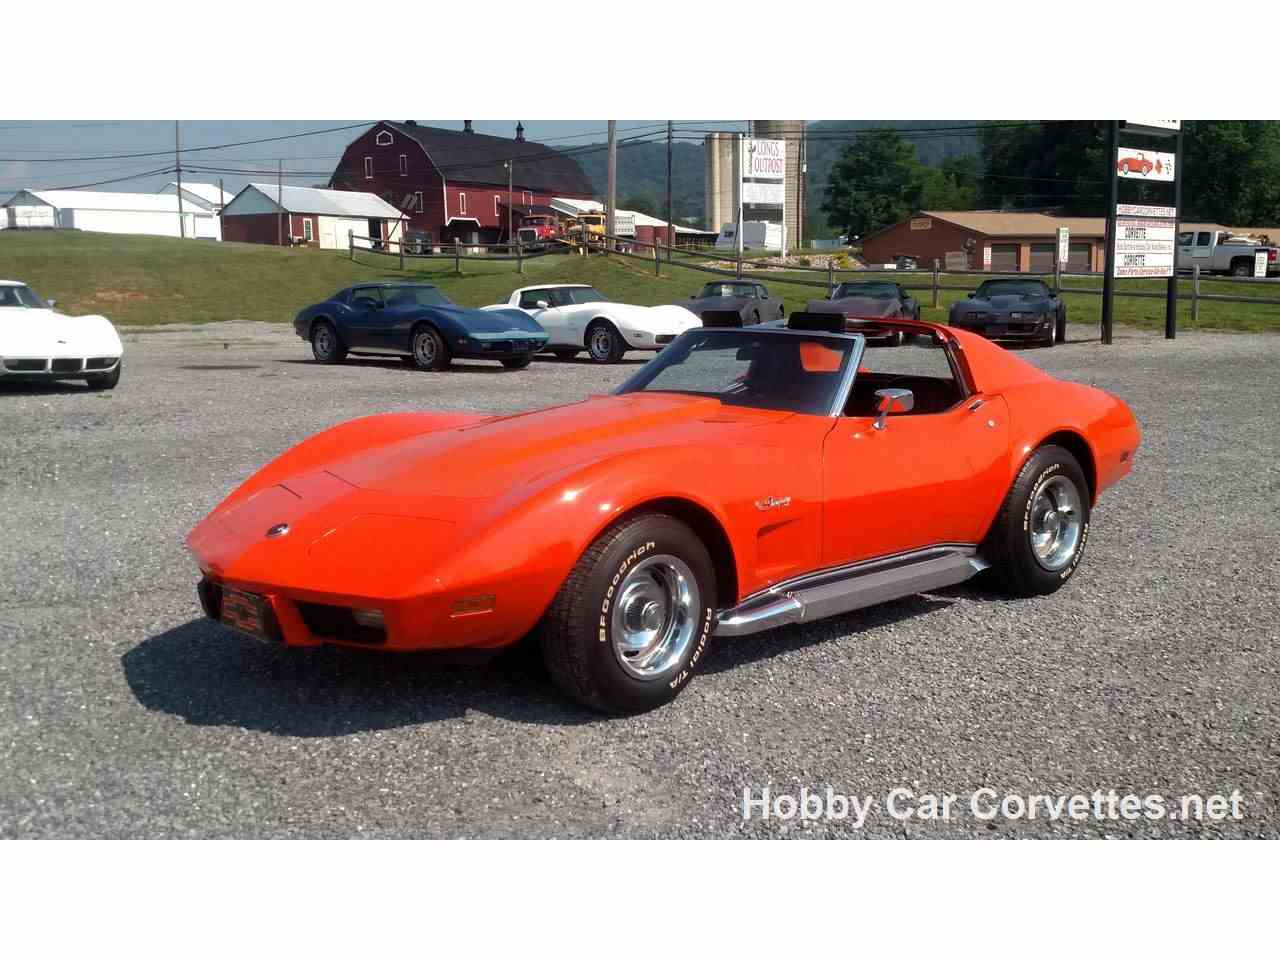 Large Picture of '76 Corvette located in Pennsylvania - $18,999.00 - LHMM